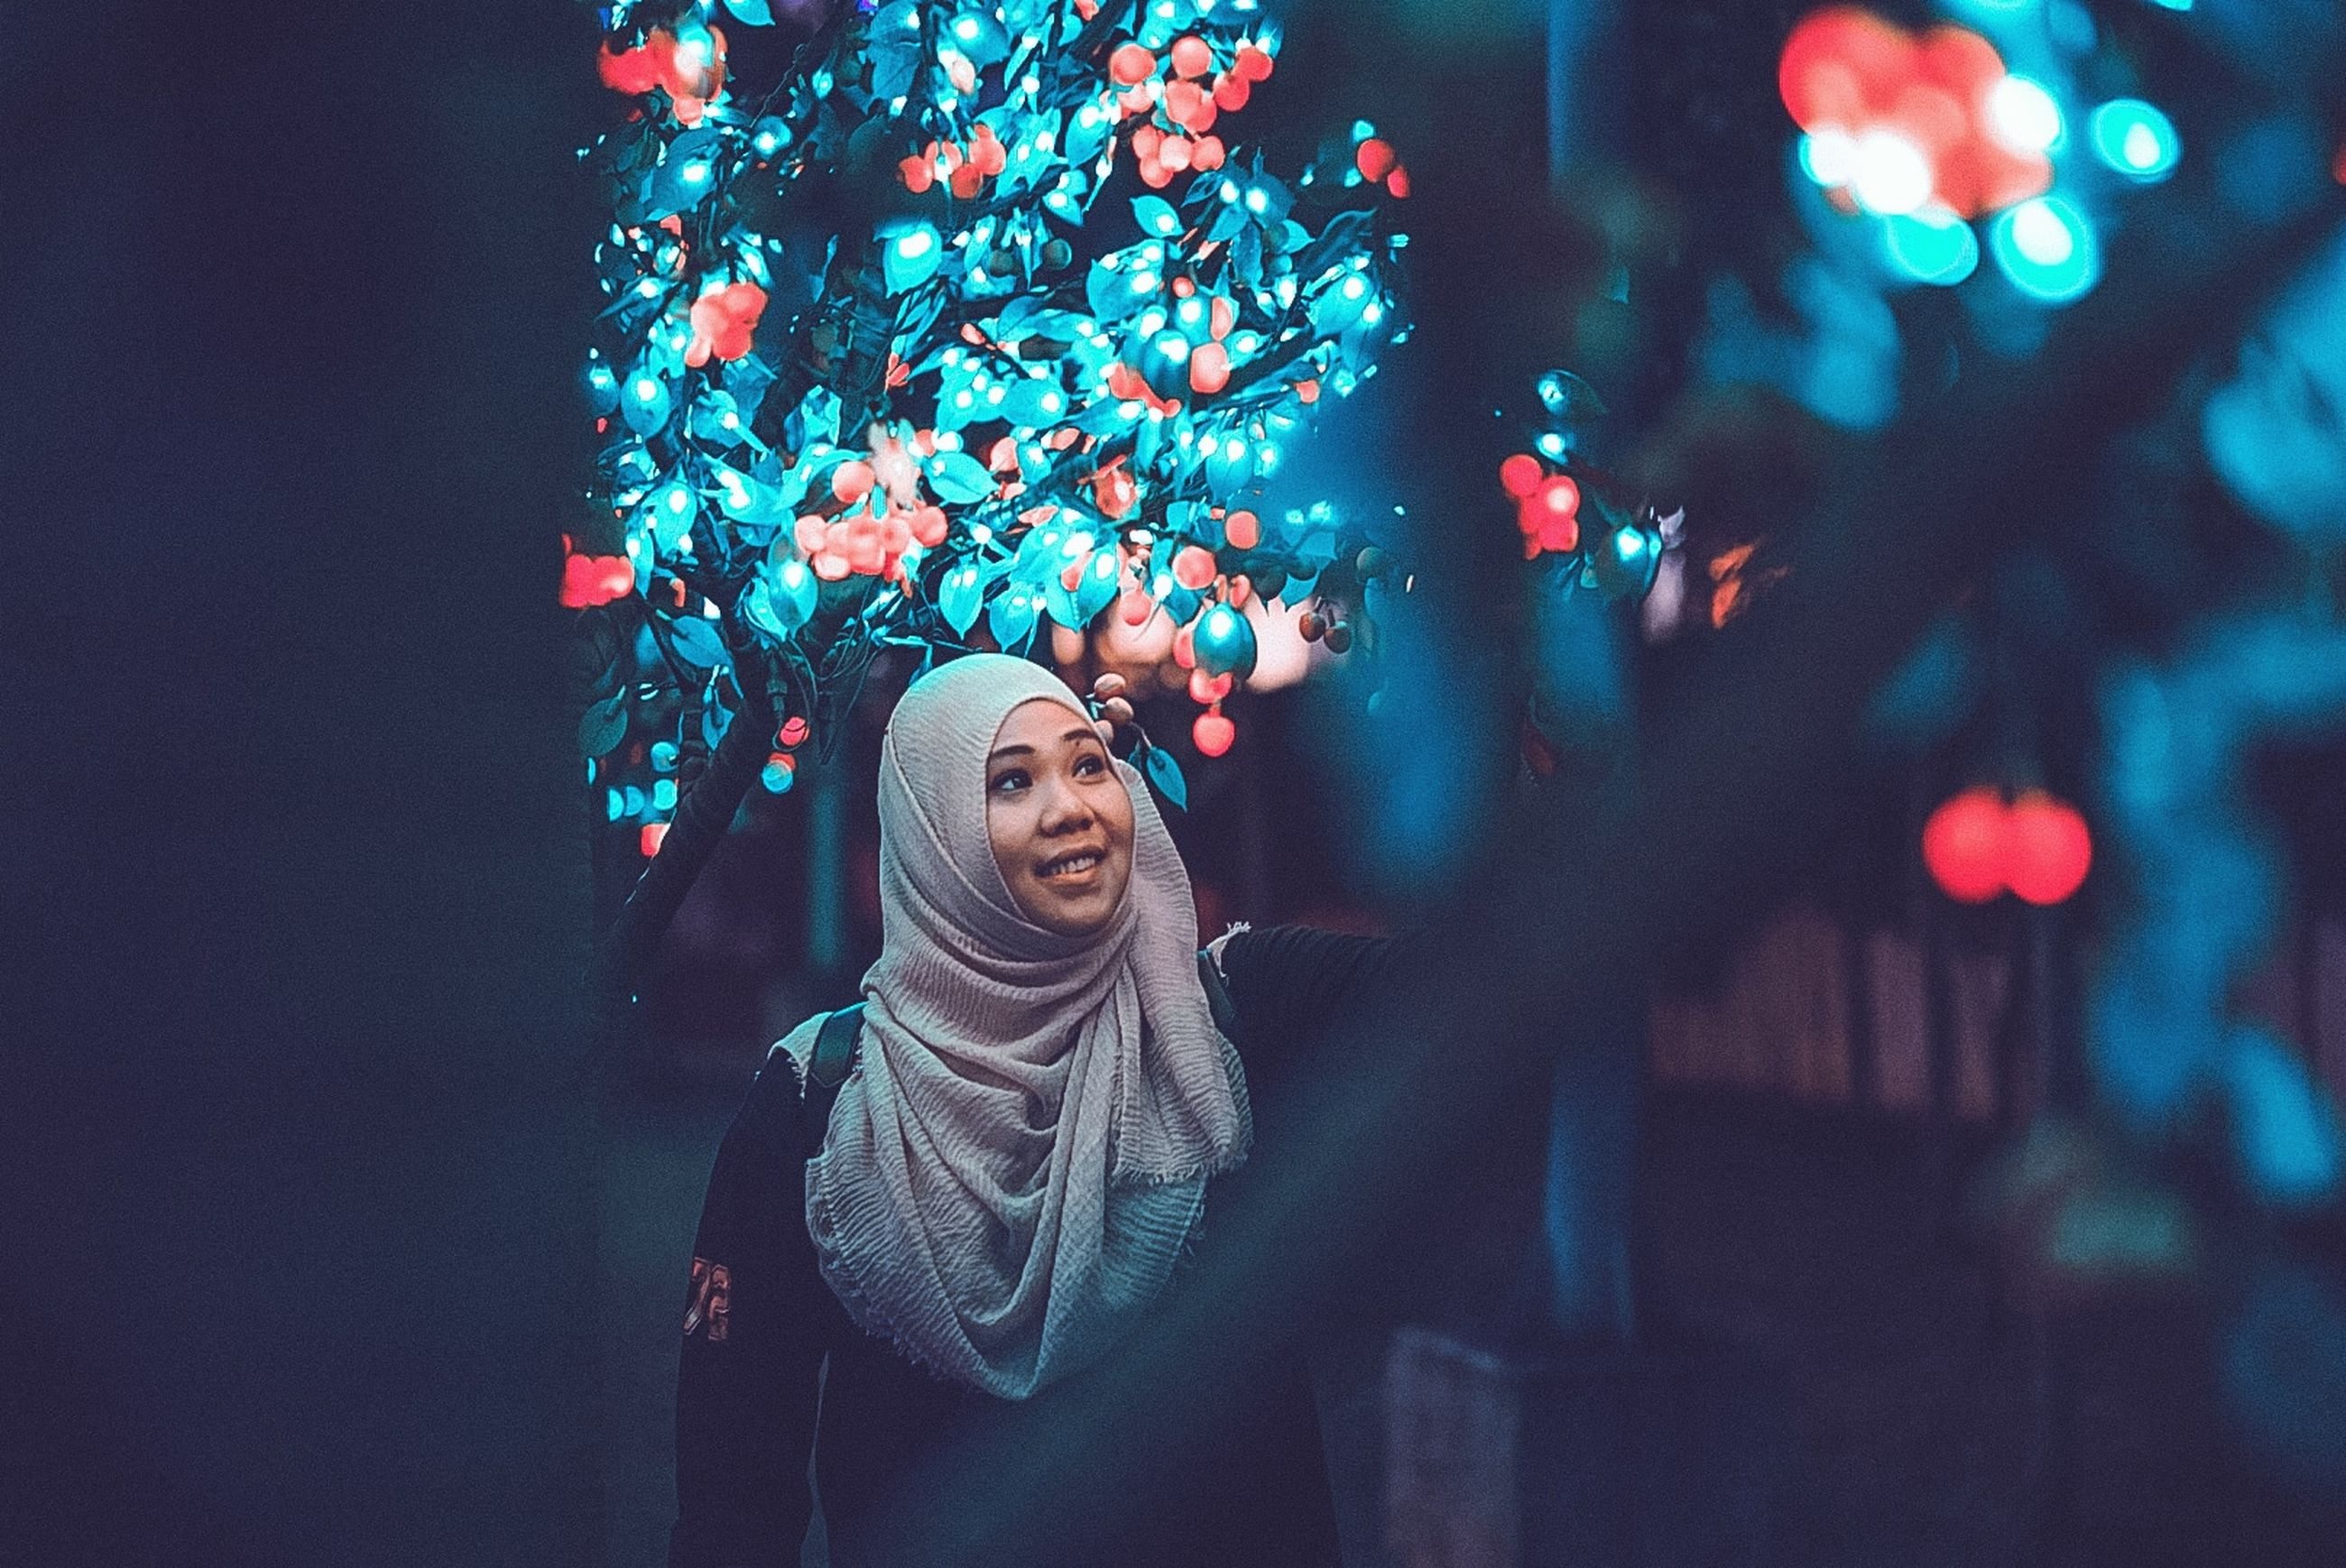 tree, christmas, celebration, holiday, illuminated, christmas decoration, plant, night, one person, decoration, christmas tree, young women, lifestyles, real people, clothing, looking, young adult, winter, christmas lights, warm clothing, scarf, outdoors, christmas ornament